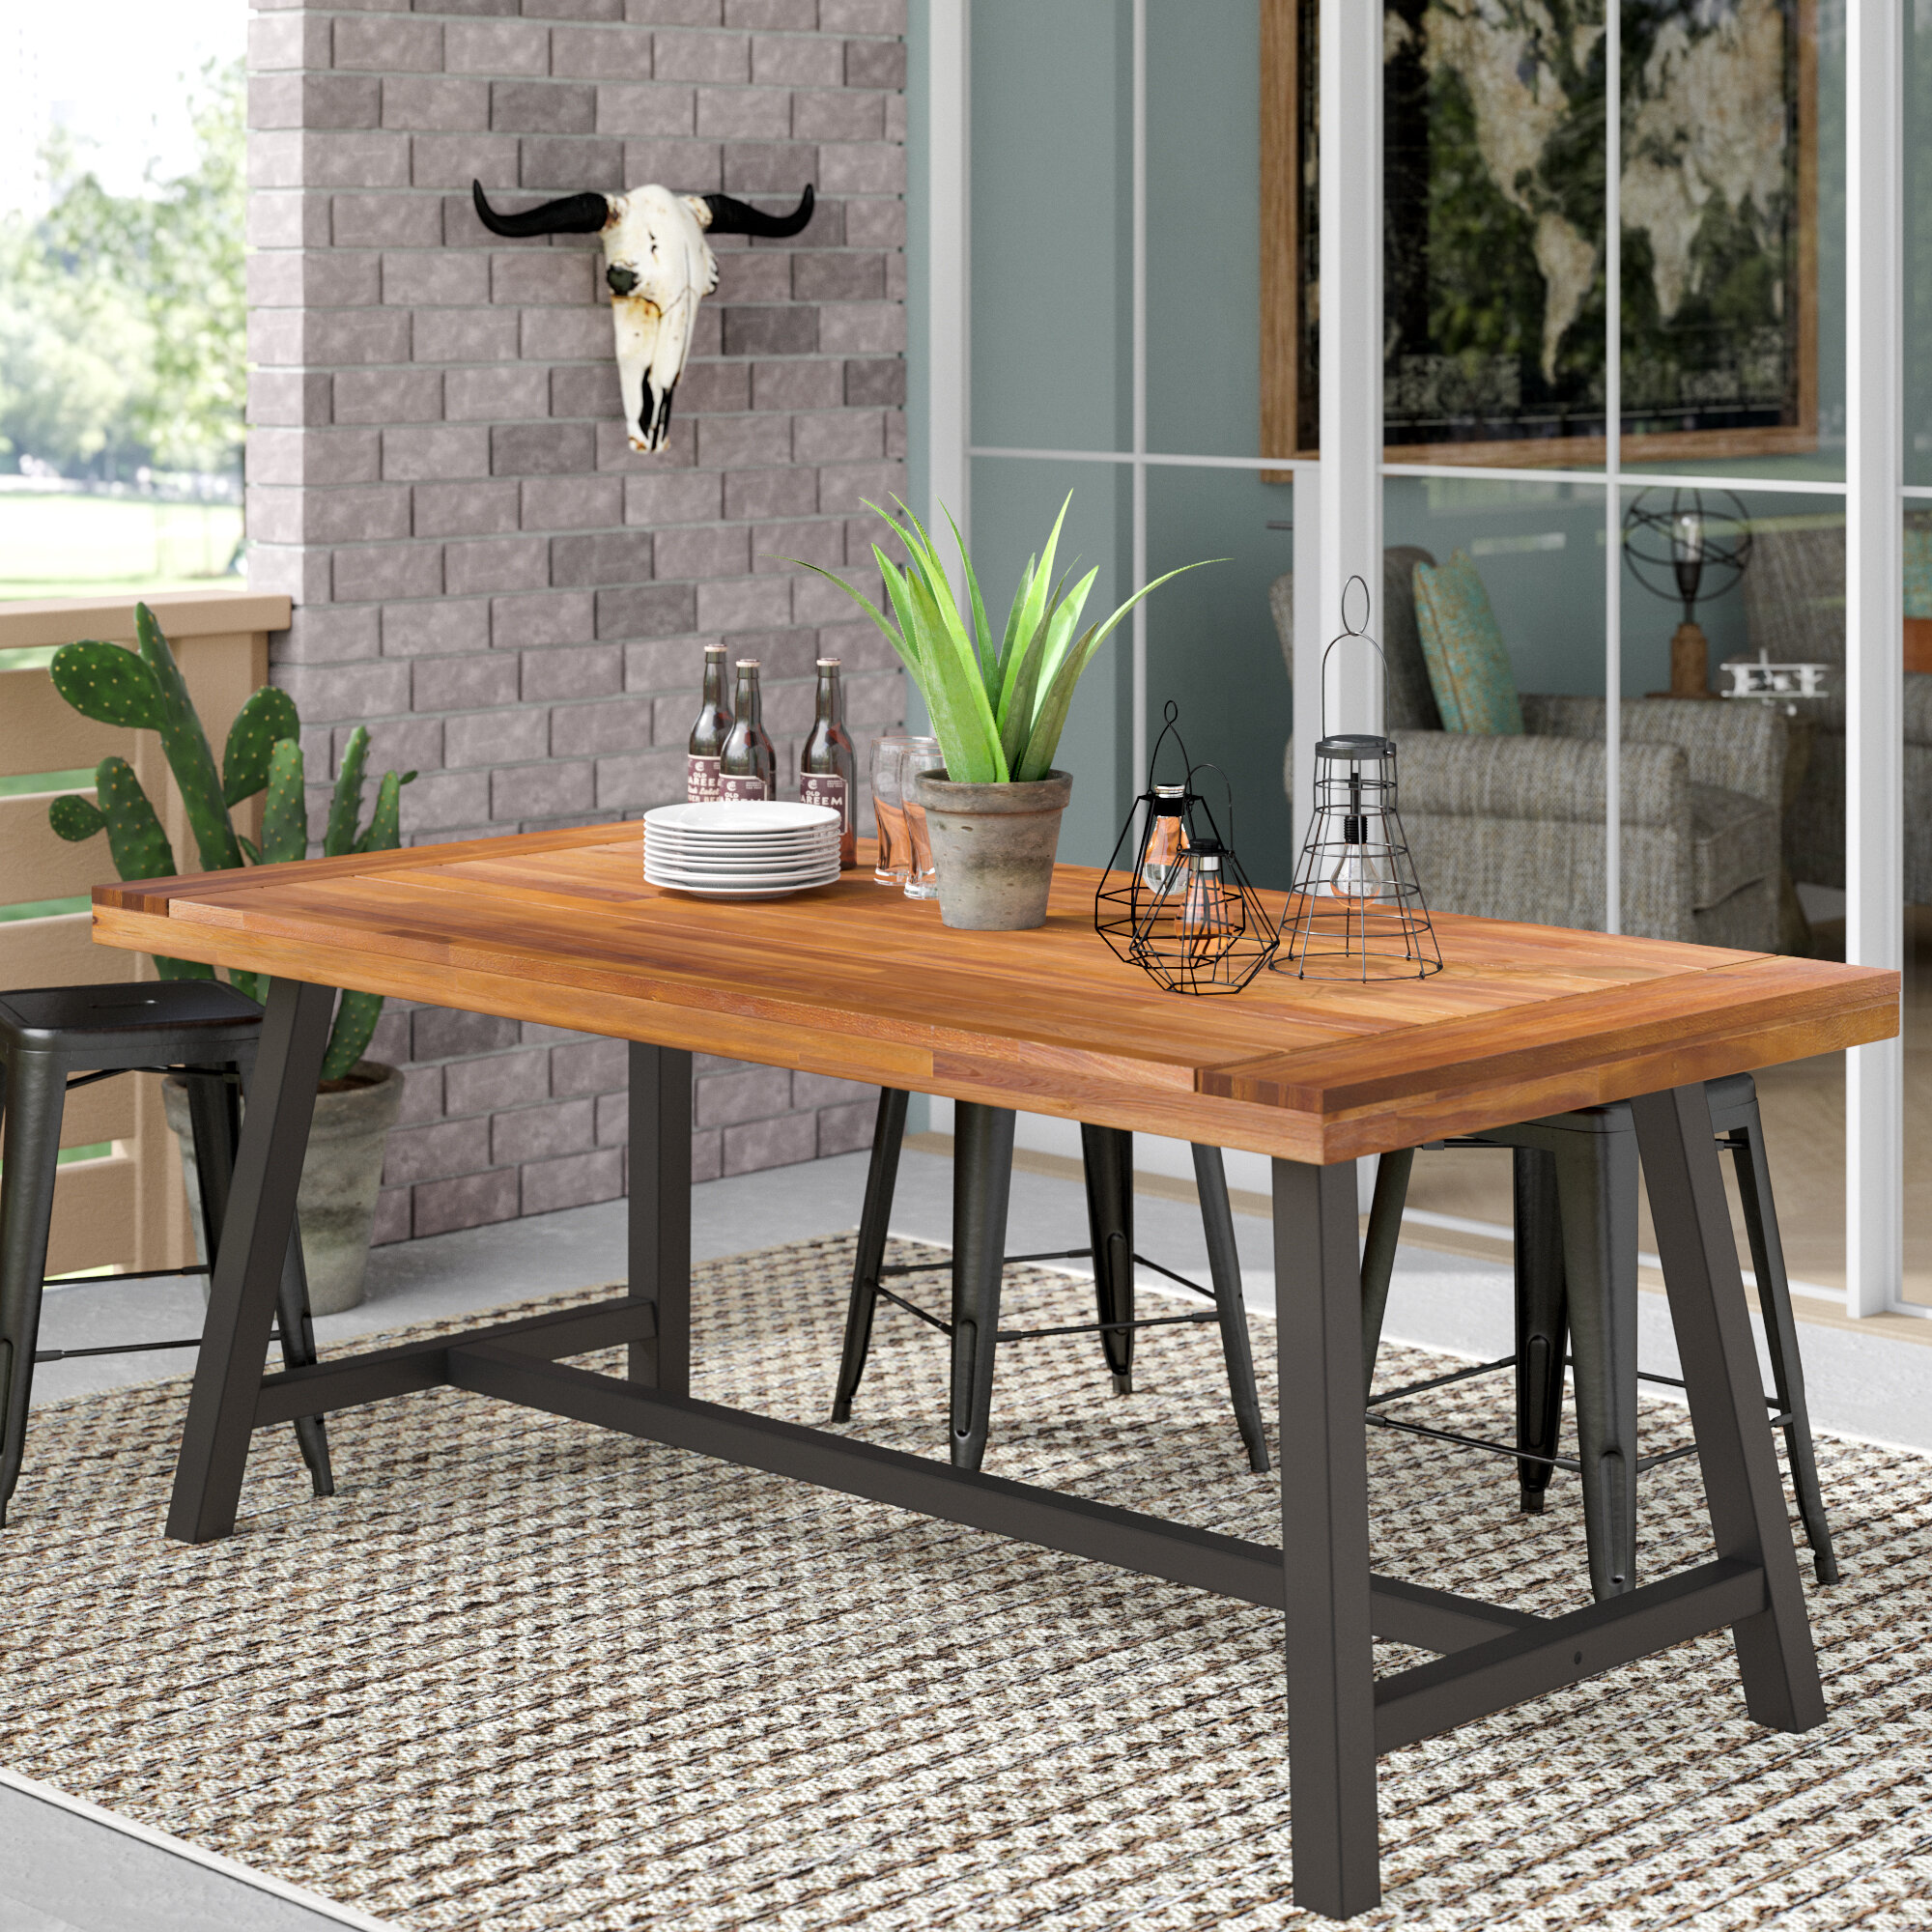 Outdoor Dining Table Images